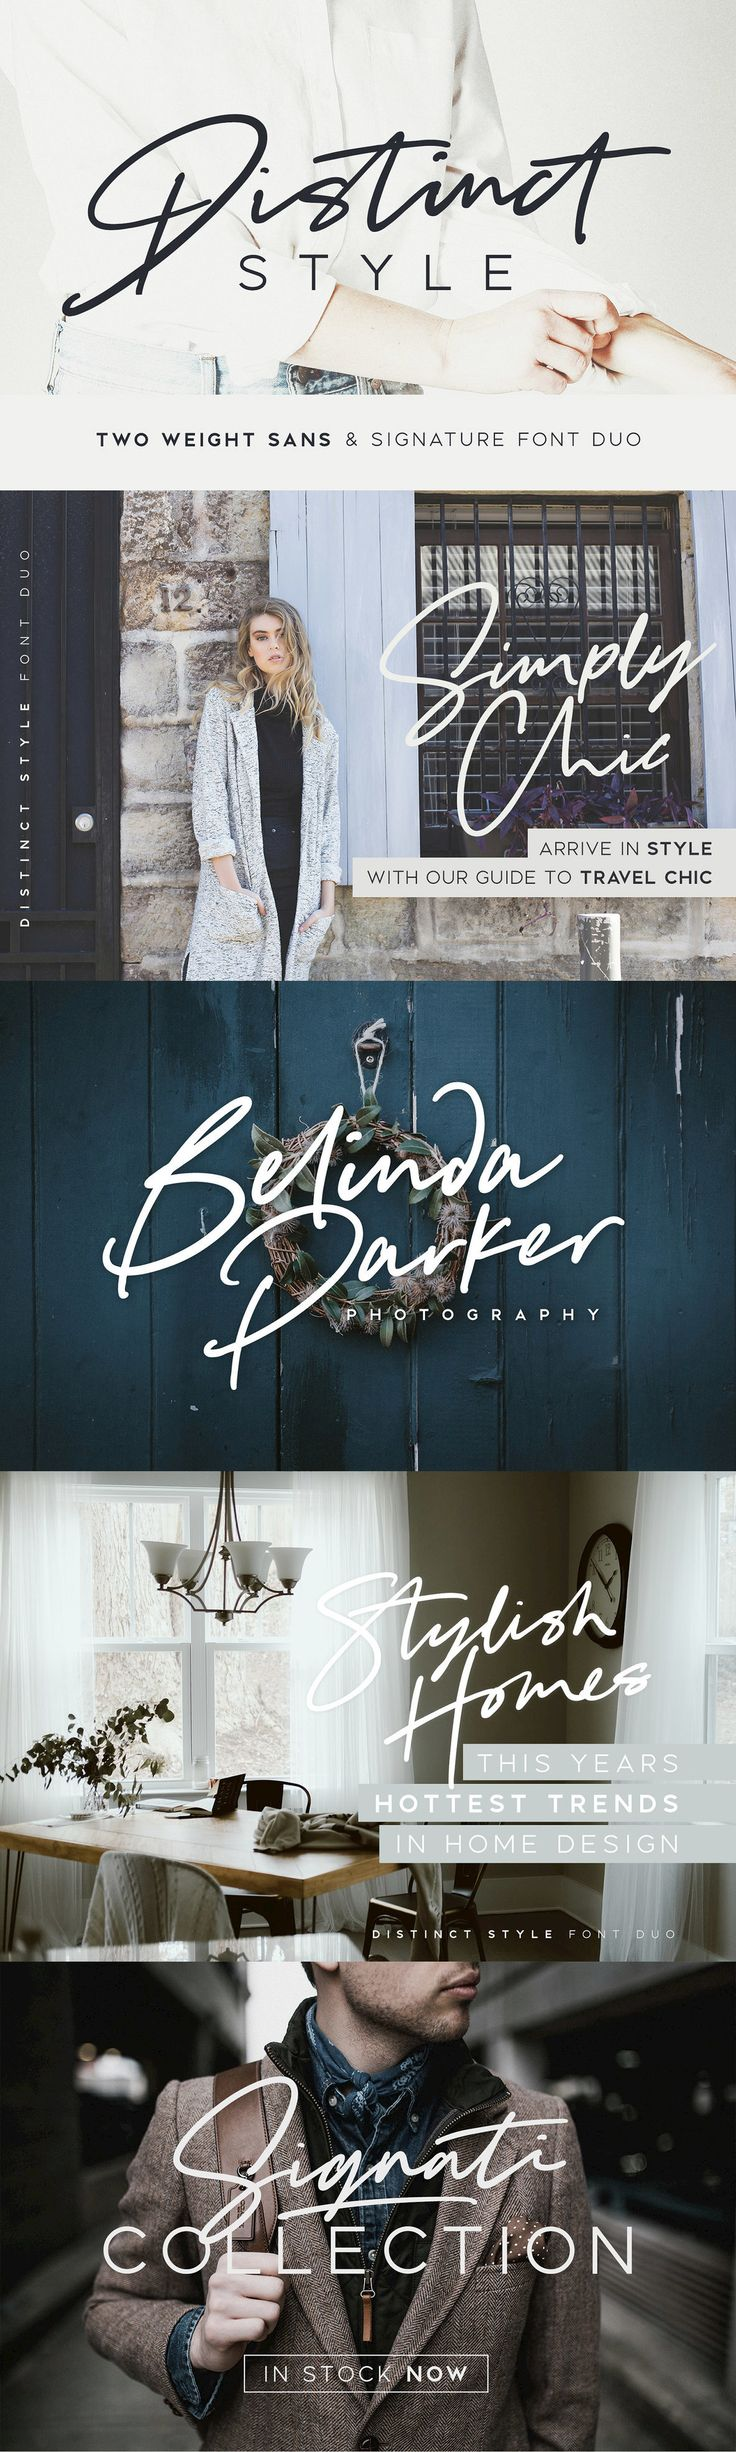 Distinct Style Font Duo - Get stylish with Distinct Style, a fashionable and contemporary pair of signature & sans fonts designed to perfectly compliment one another. With a fast-flowing script font and a two-weight modern sans serif, the Distinct Style duo offers typographic harmony for your professional design projects, including; logos, branding, magazines, blog posts, social media, advertisements & product designs.  Your download will receive 5 font files, designed to work as perfect…